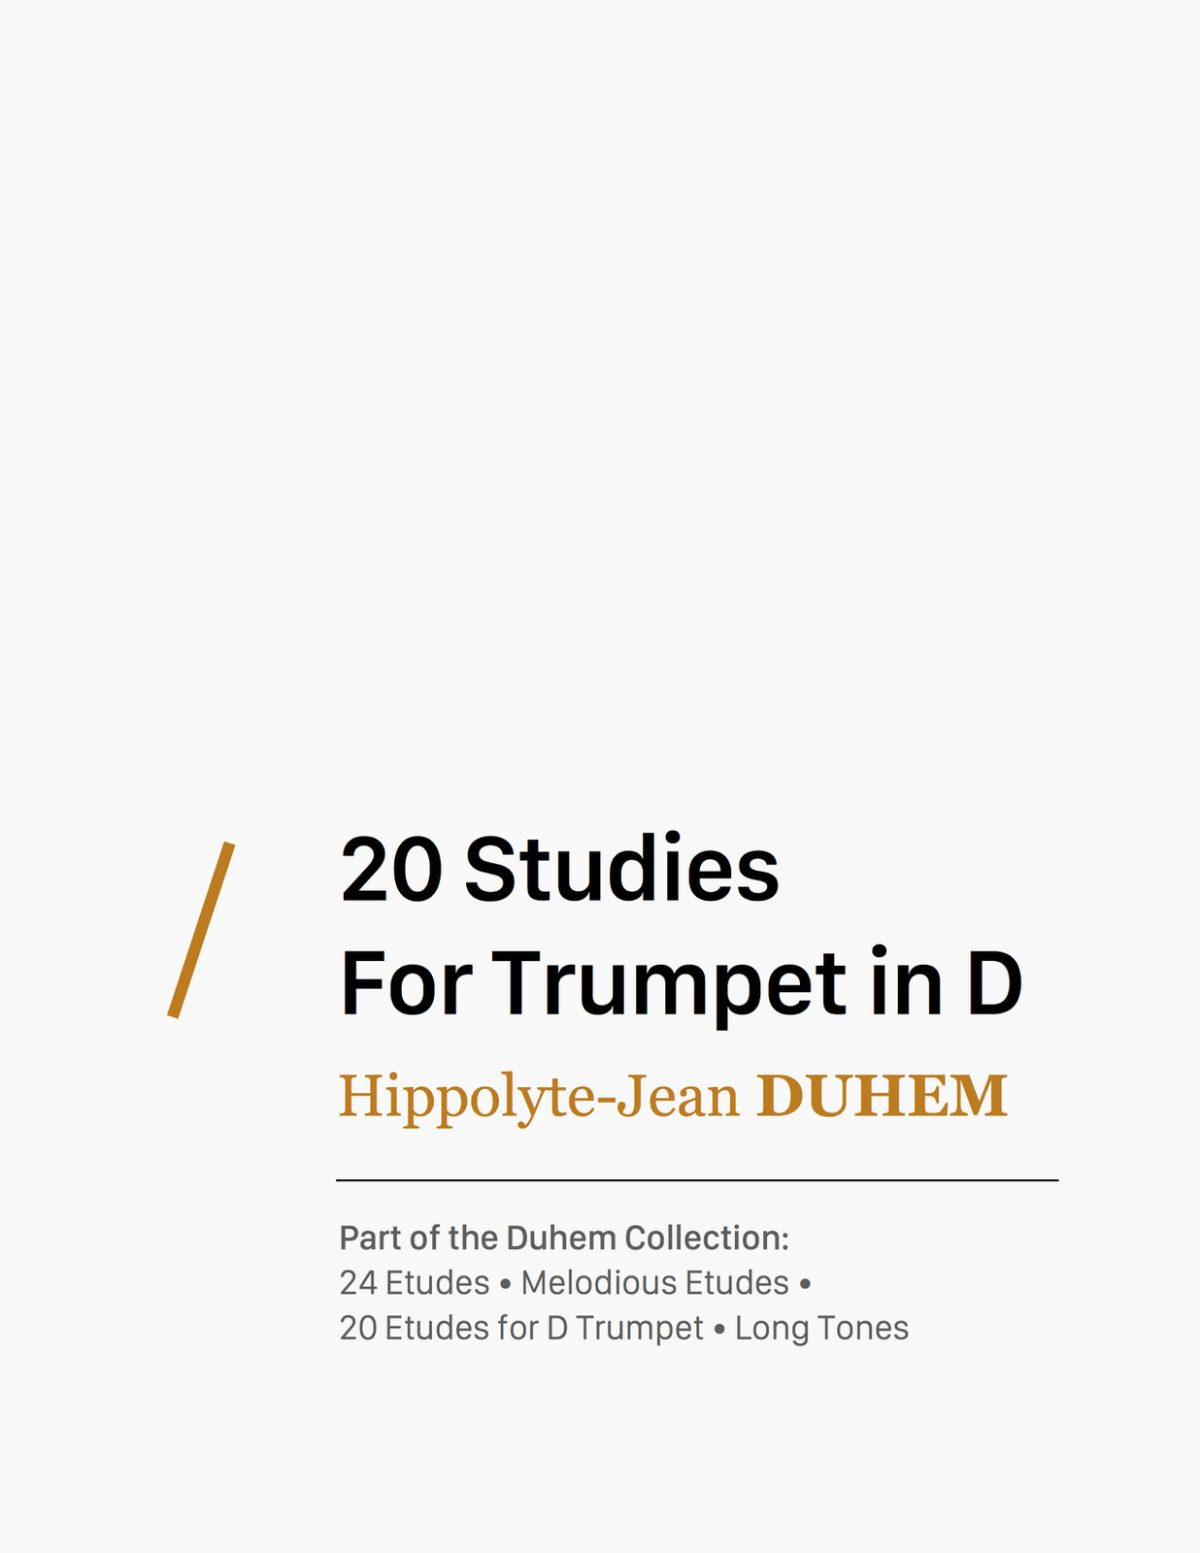 duhem-20-studies-for-d-trumpet